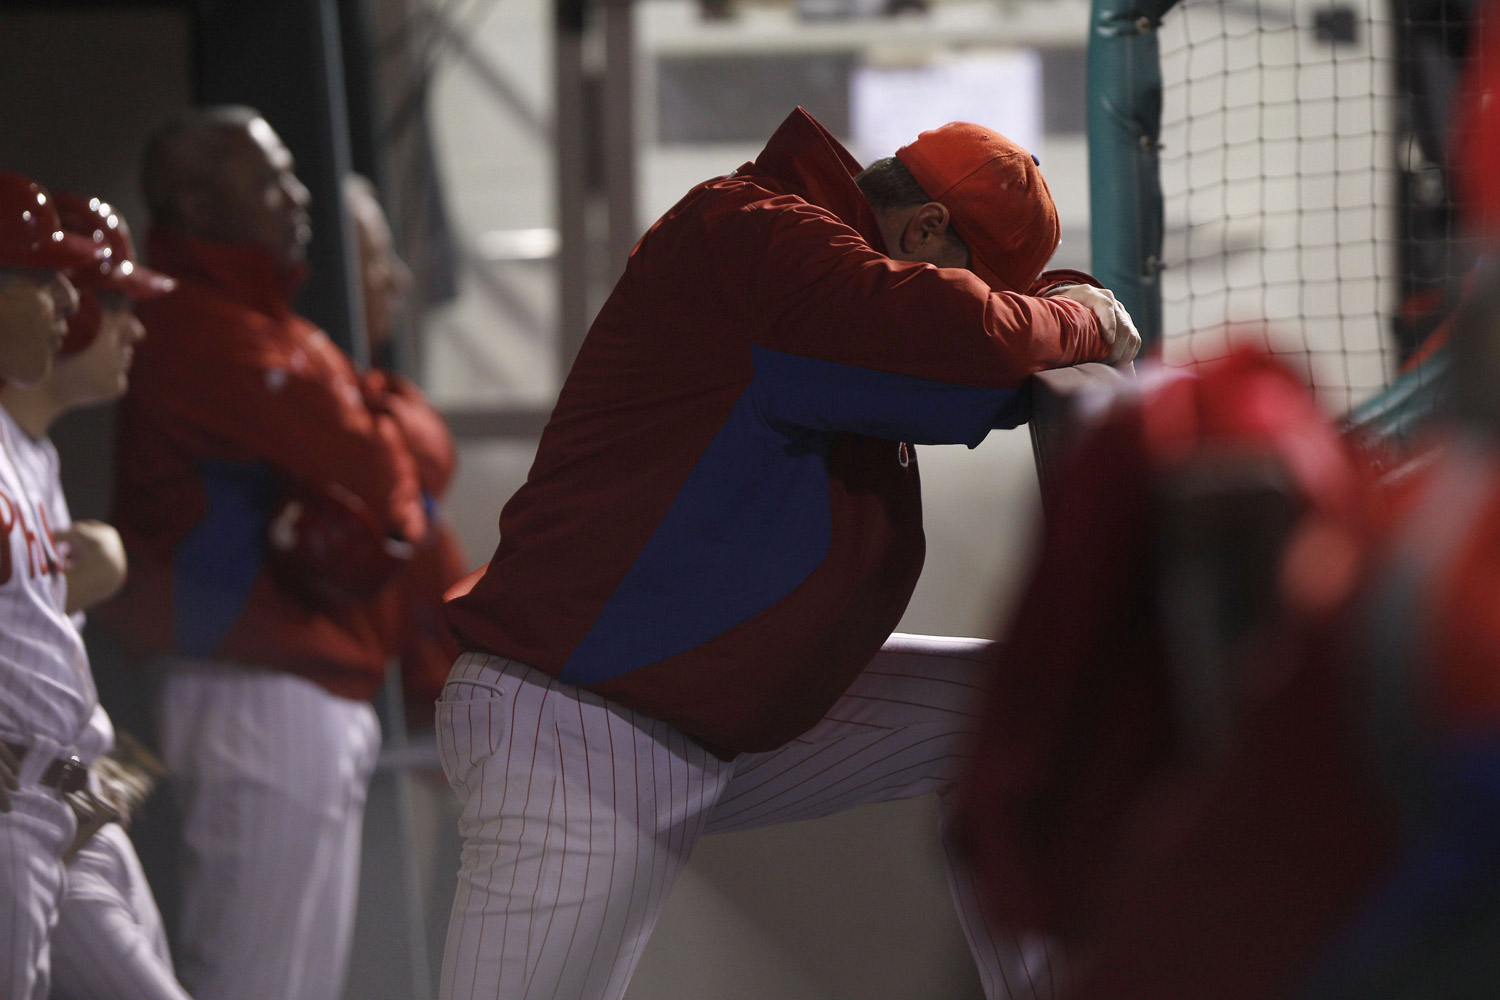 October 7, 2011. Philadelphia Phillies pitcher Roy Halladay laments his team's fate during the eighth inning of Game 5 of the National League Division Series. The St. Louis Cardinals, thanks to a masterly pitching performance by Chris Carpenter, beat Halladay and the Phillies 1-0 to advance to the League Championship Series against Milwaukee.